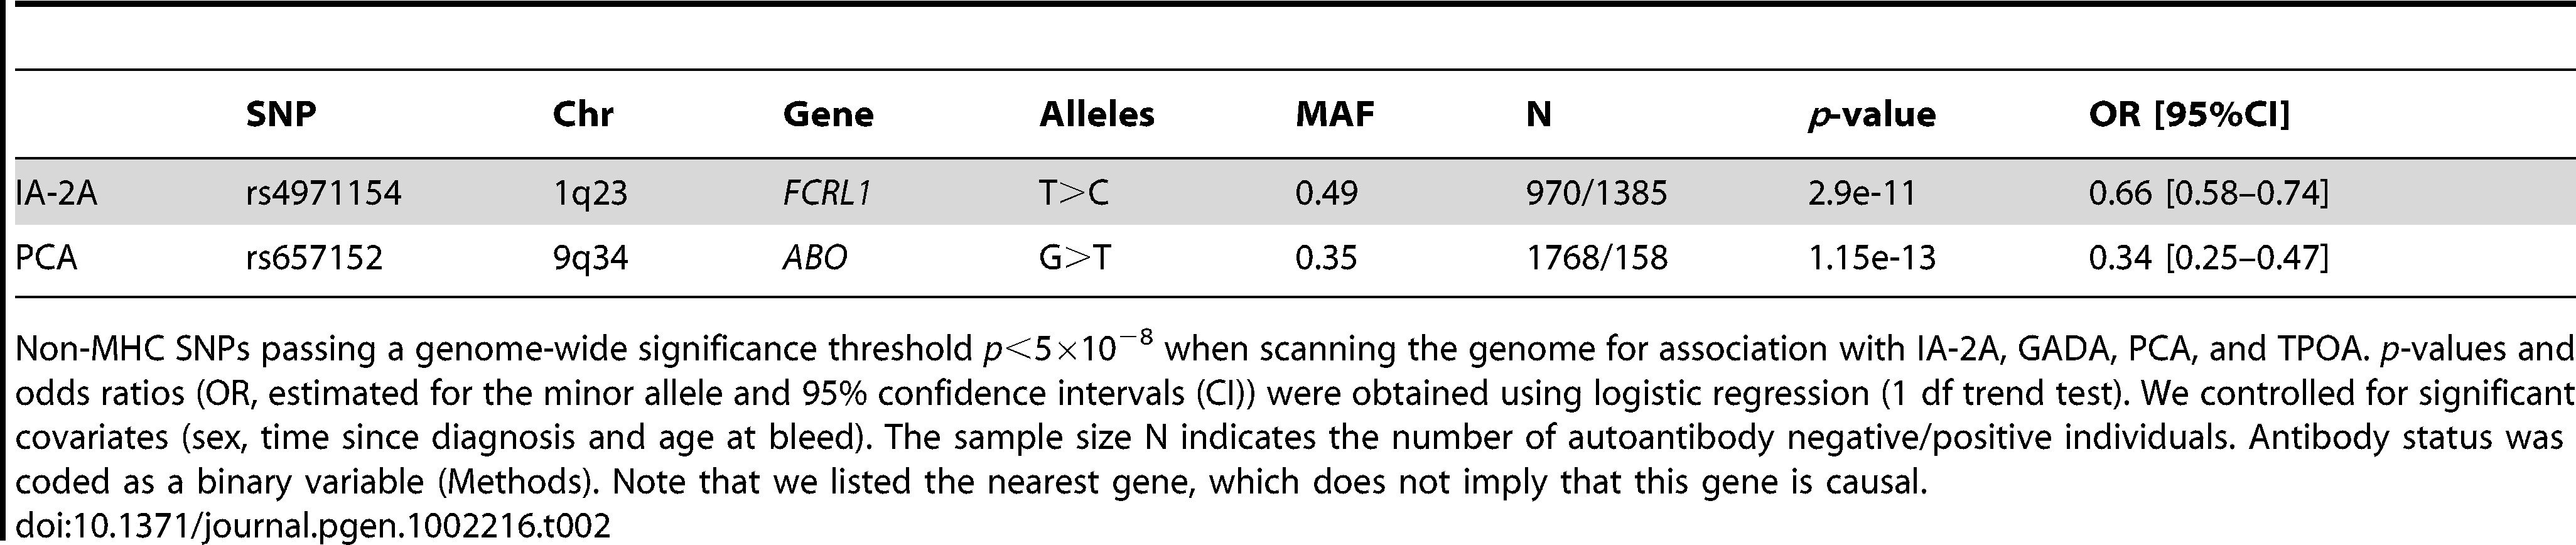 Autoantibody associations passing a genome-wide association significance threshold in the GWA scan (MHC excluded).